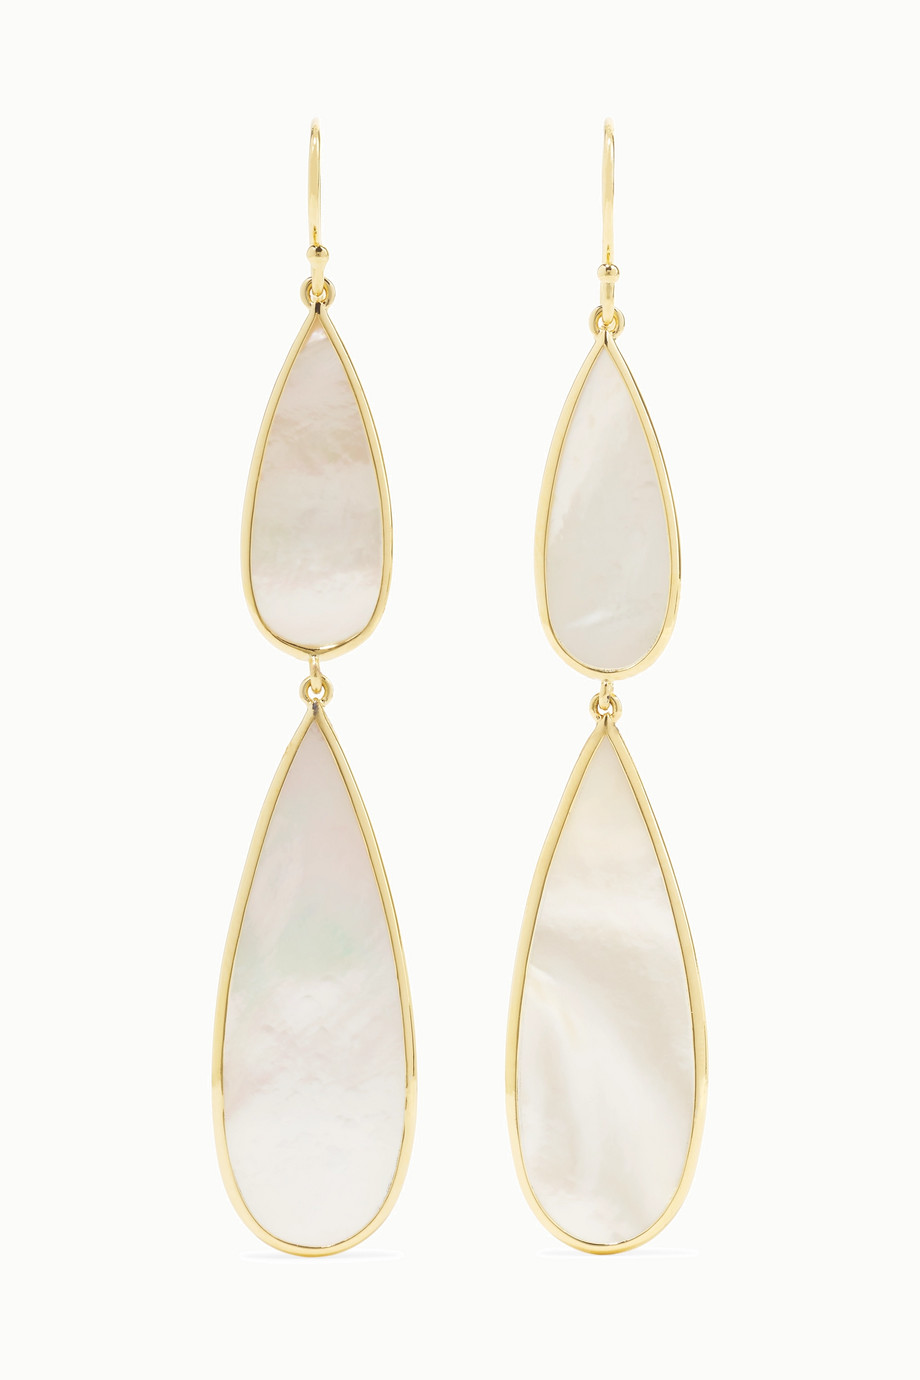 Ippolita Polished Rock Candy 18-karat gold mother-of-pearl earrings